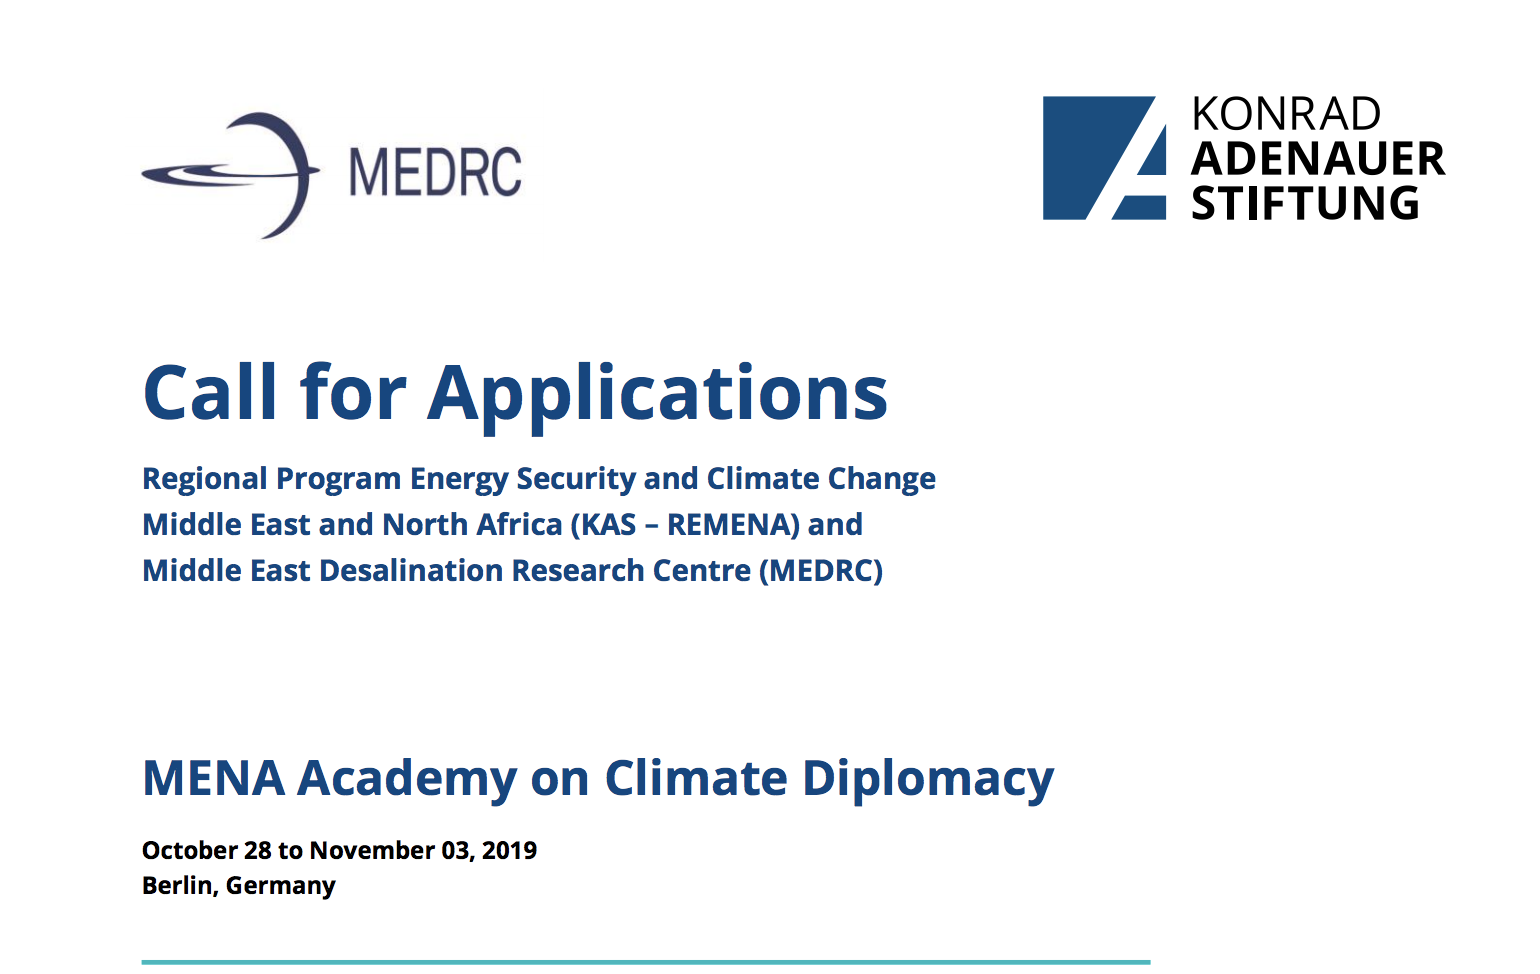 MENA Academy on Climate Diplomacy 2019 (Fully-funded to Berlin, Germany)